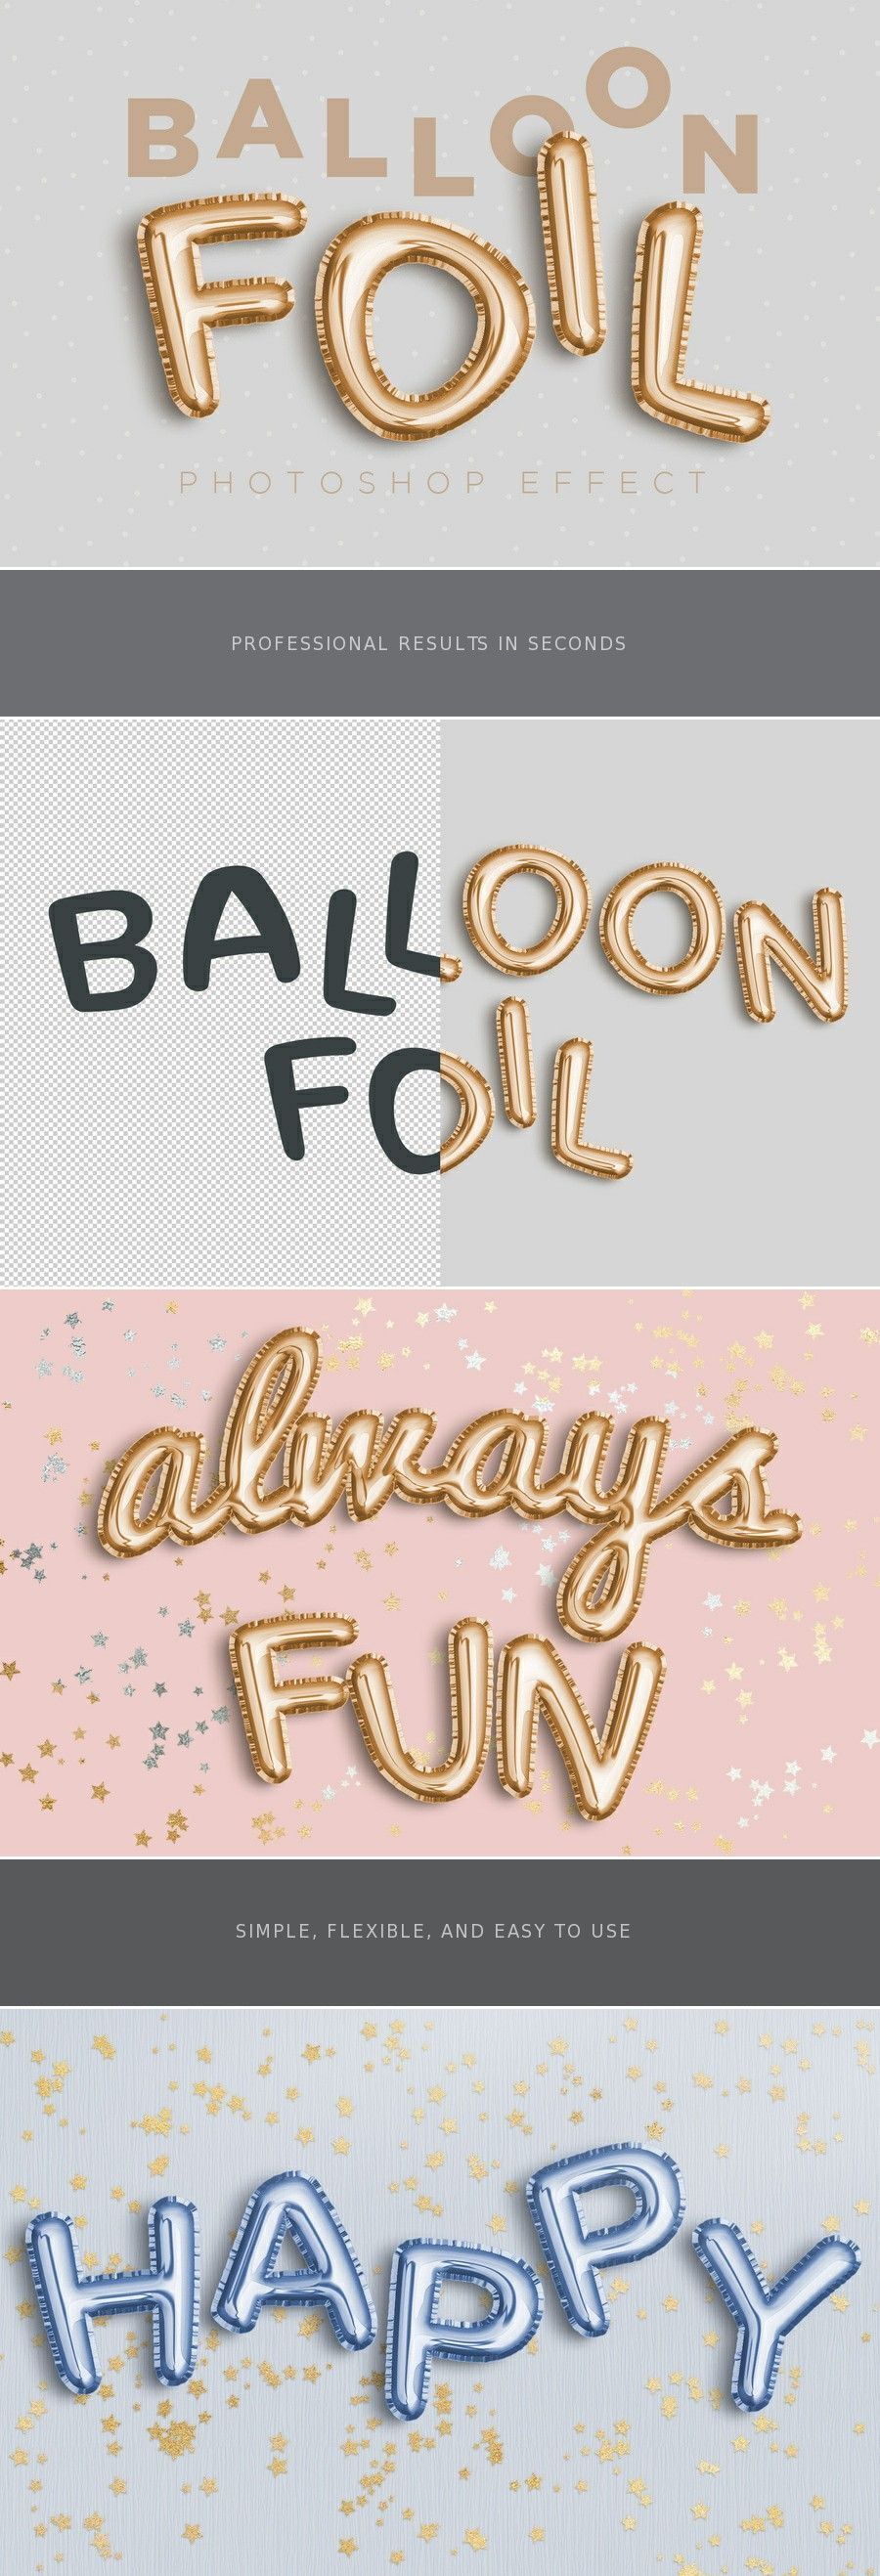 Foil Effect Easily create a realistic balloon foil effect with this Photoshop template. Just replace the included Smart Object with your own design and change the color to any color that you wish. Any type of design is supported (vector shapes, raster or a simple font) and you can easily change the color by controling the HSL values.Easily creat...